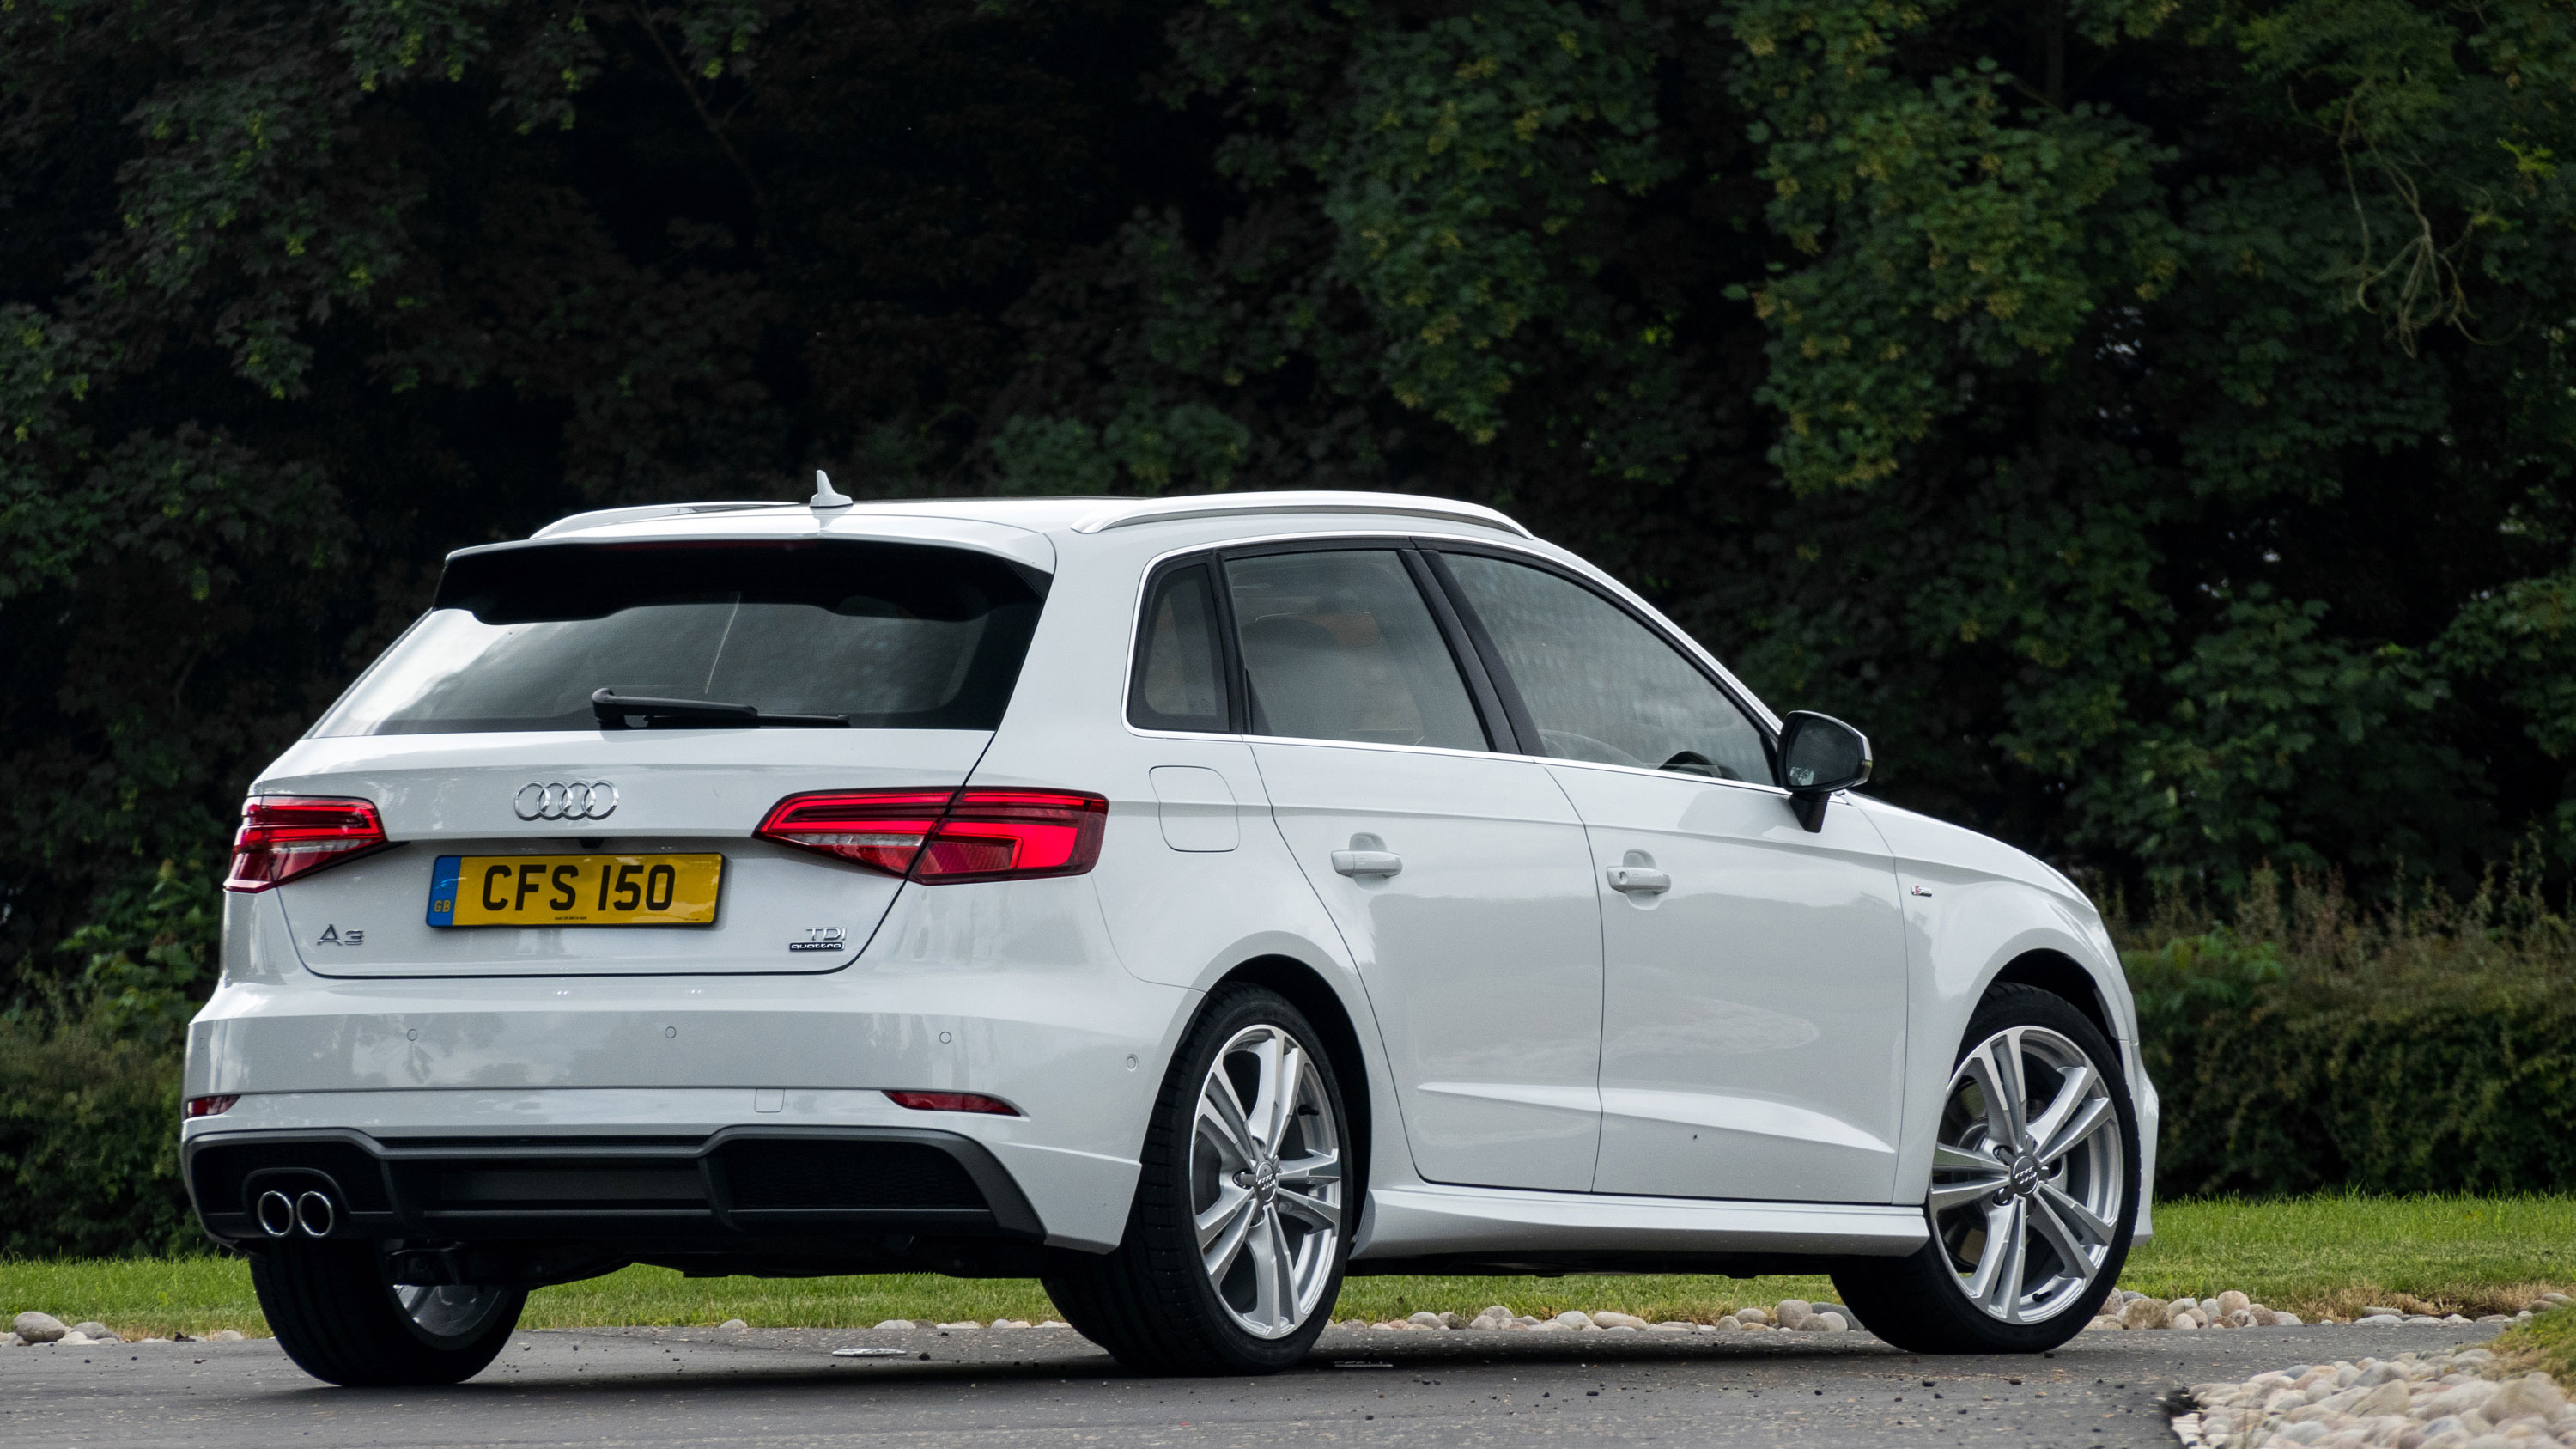 Audi A3 S Line Used Cars For Sale Autotrader Uk